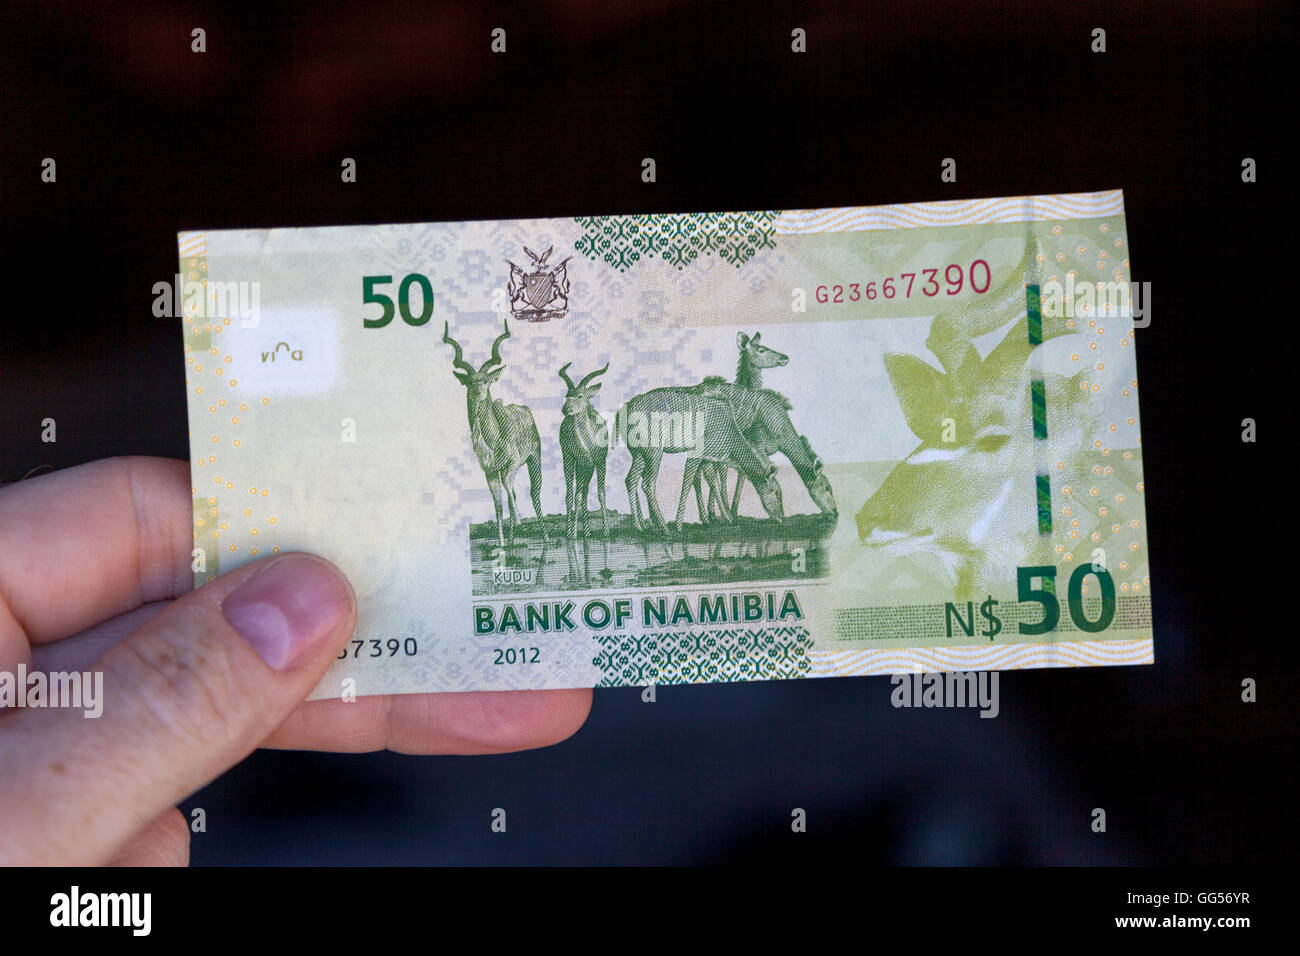 Namibia Namibian dollar currency. N$50 depicting Kudu - Stock Image